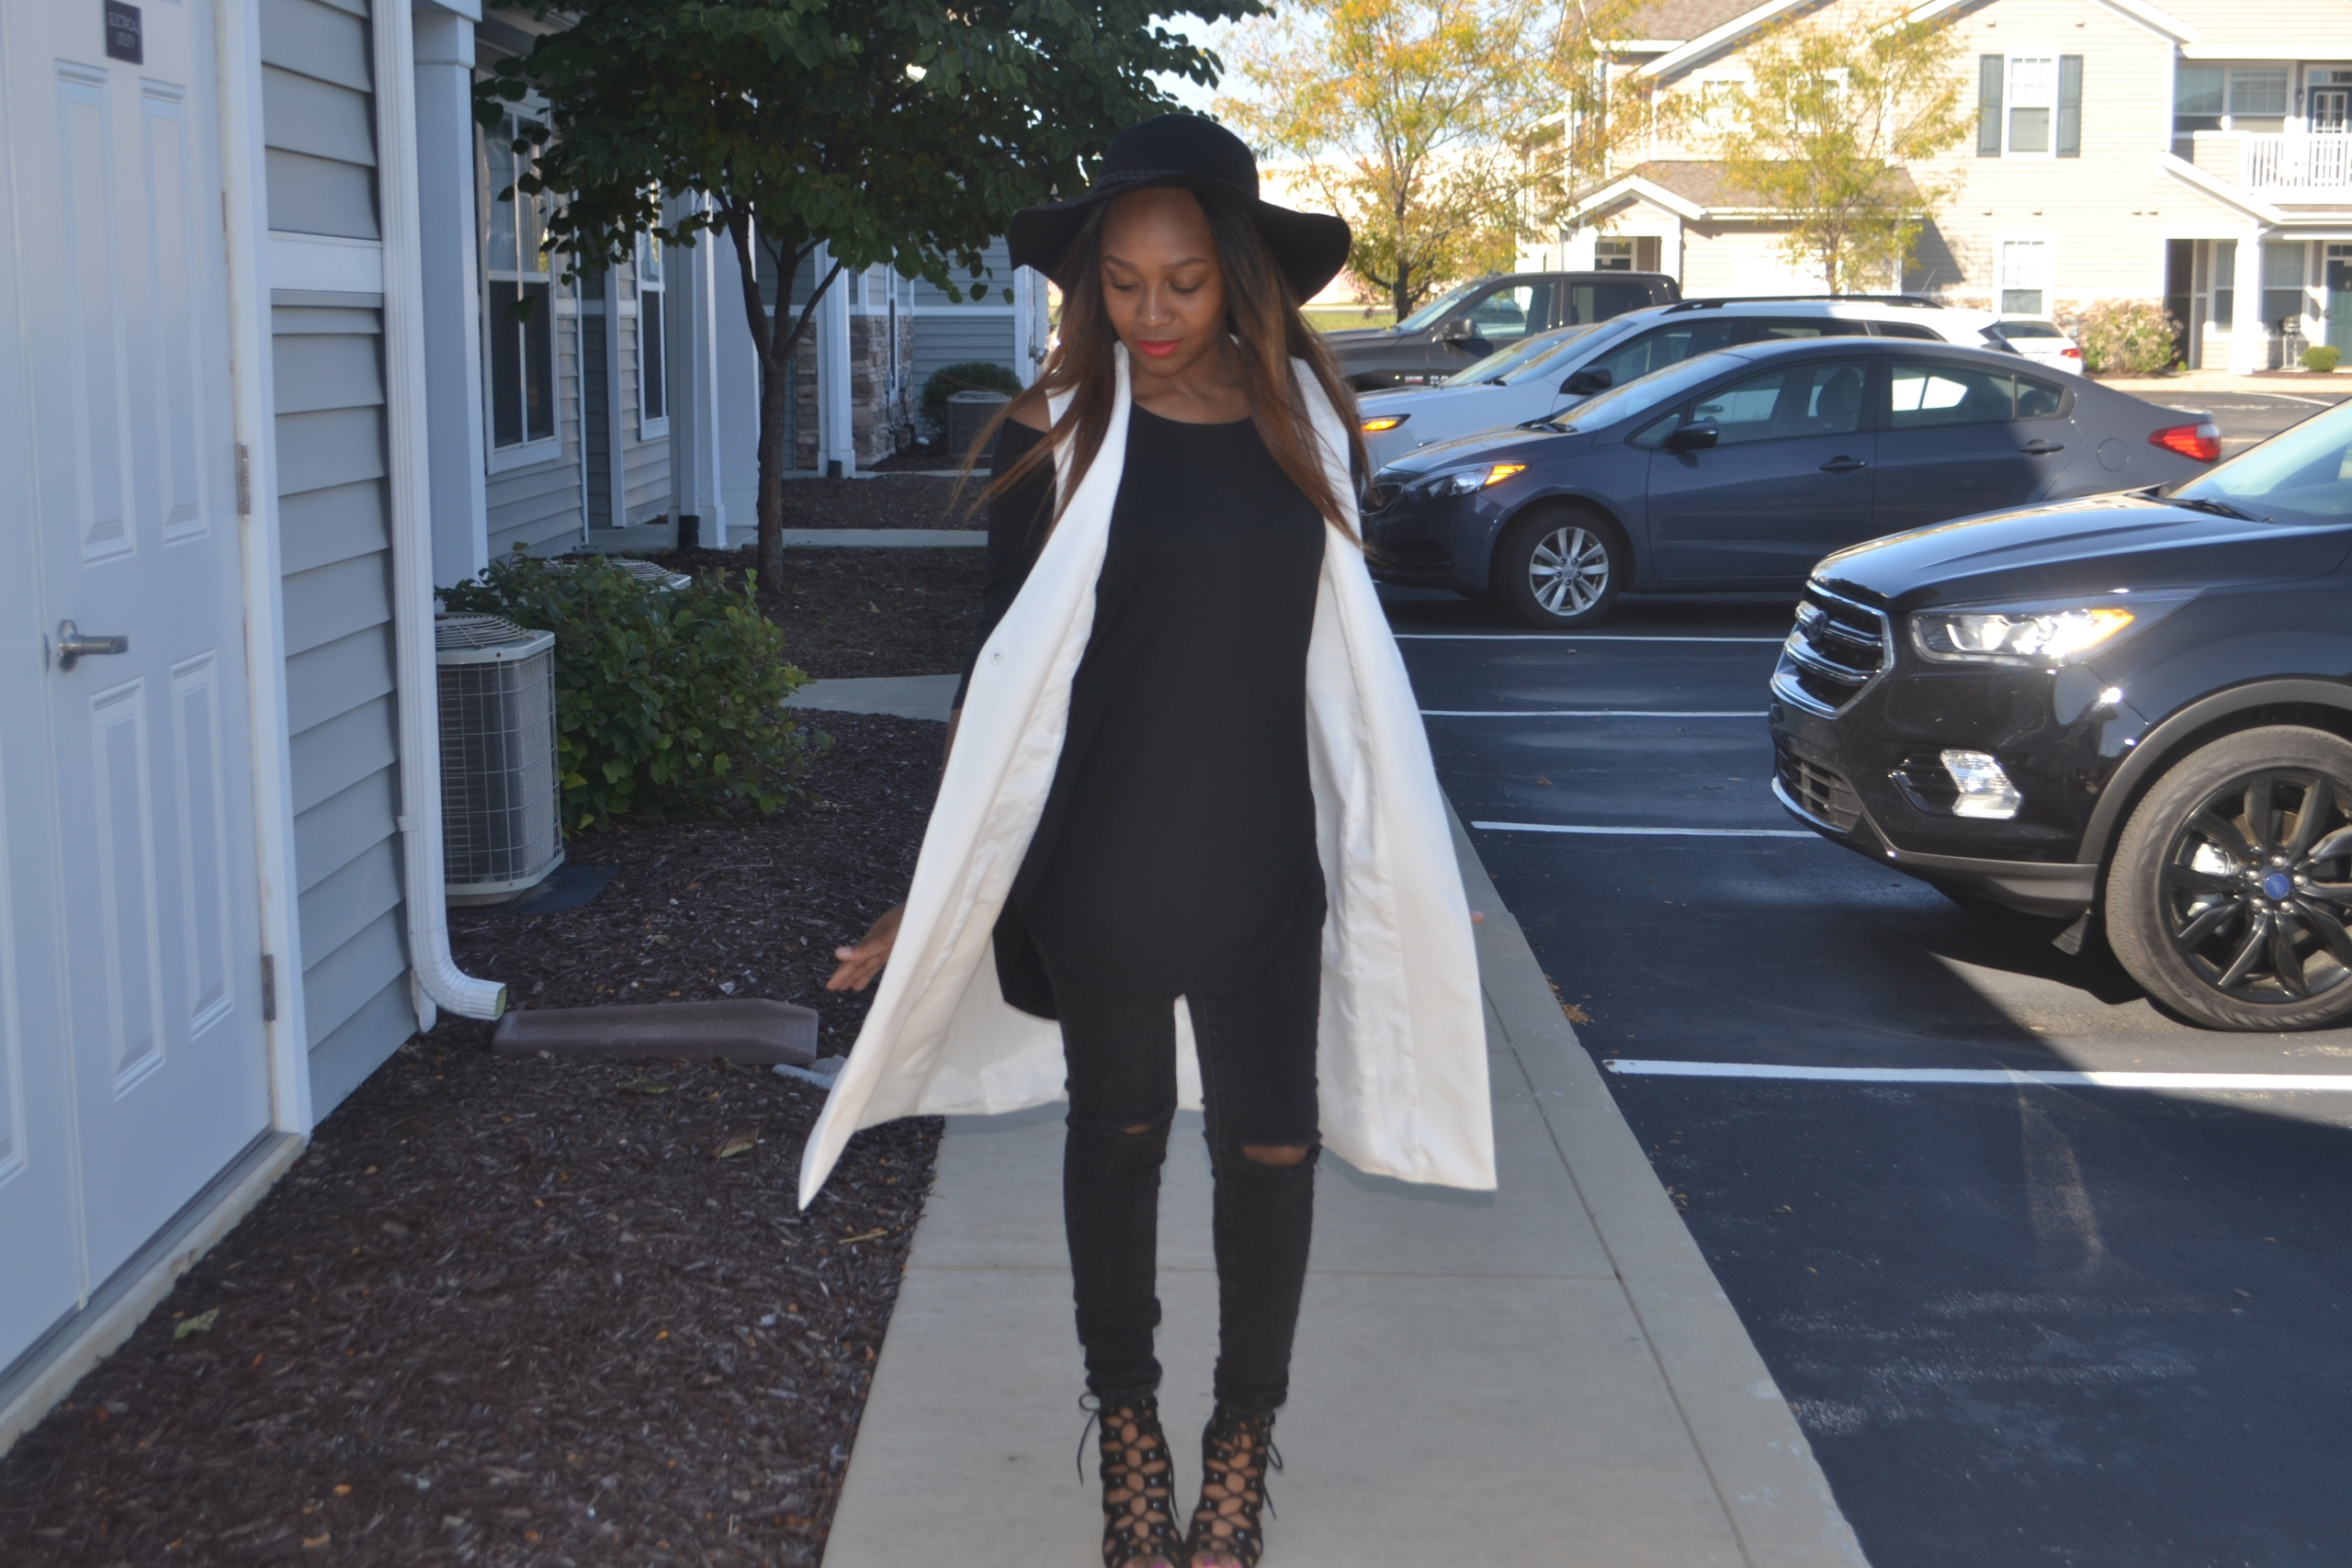 Wearing All Black …How to Spice Up a Boring Outfit